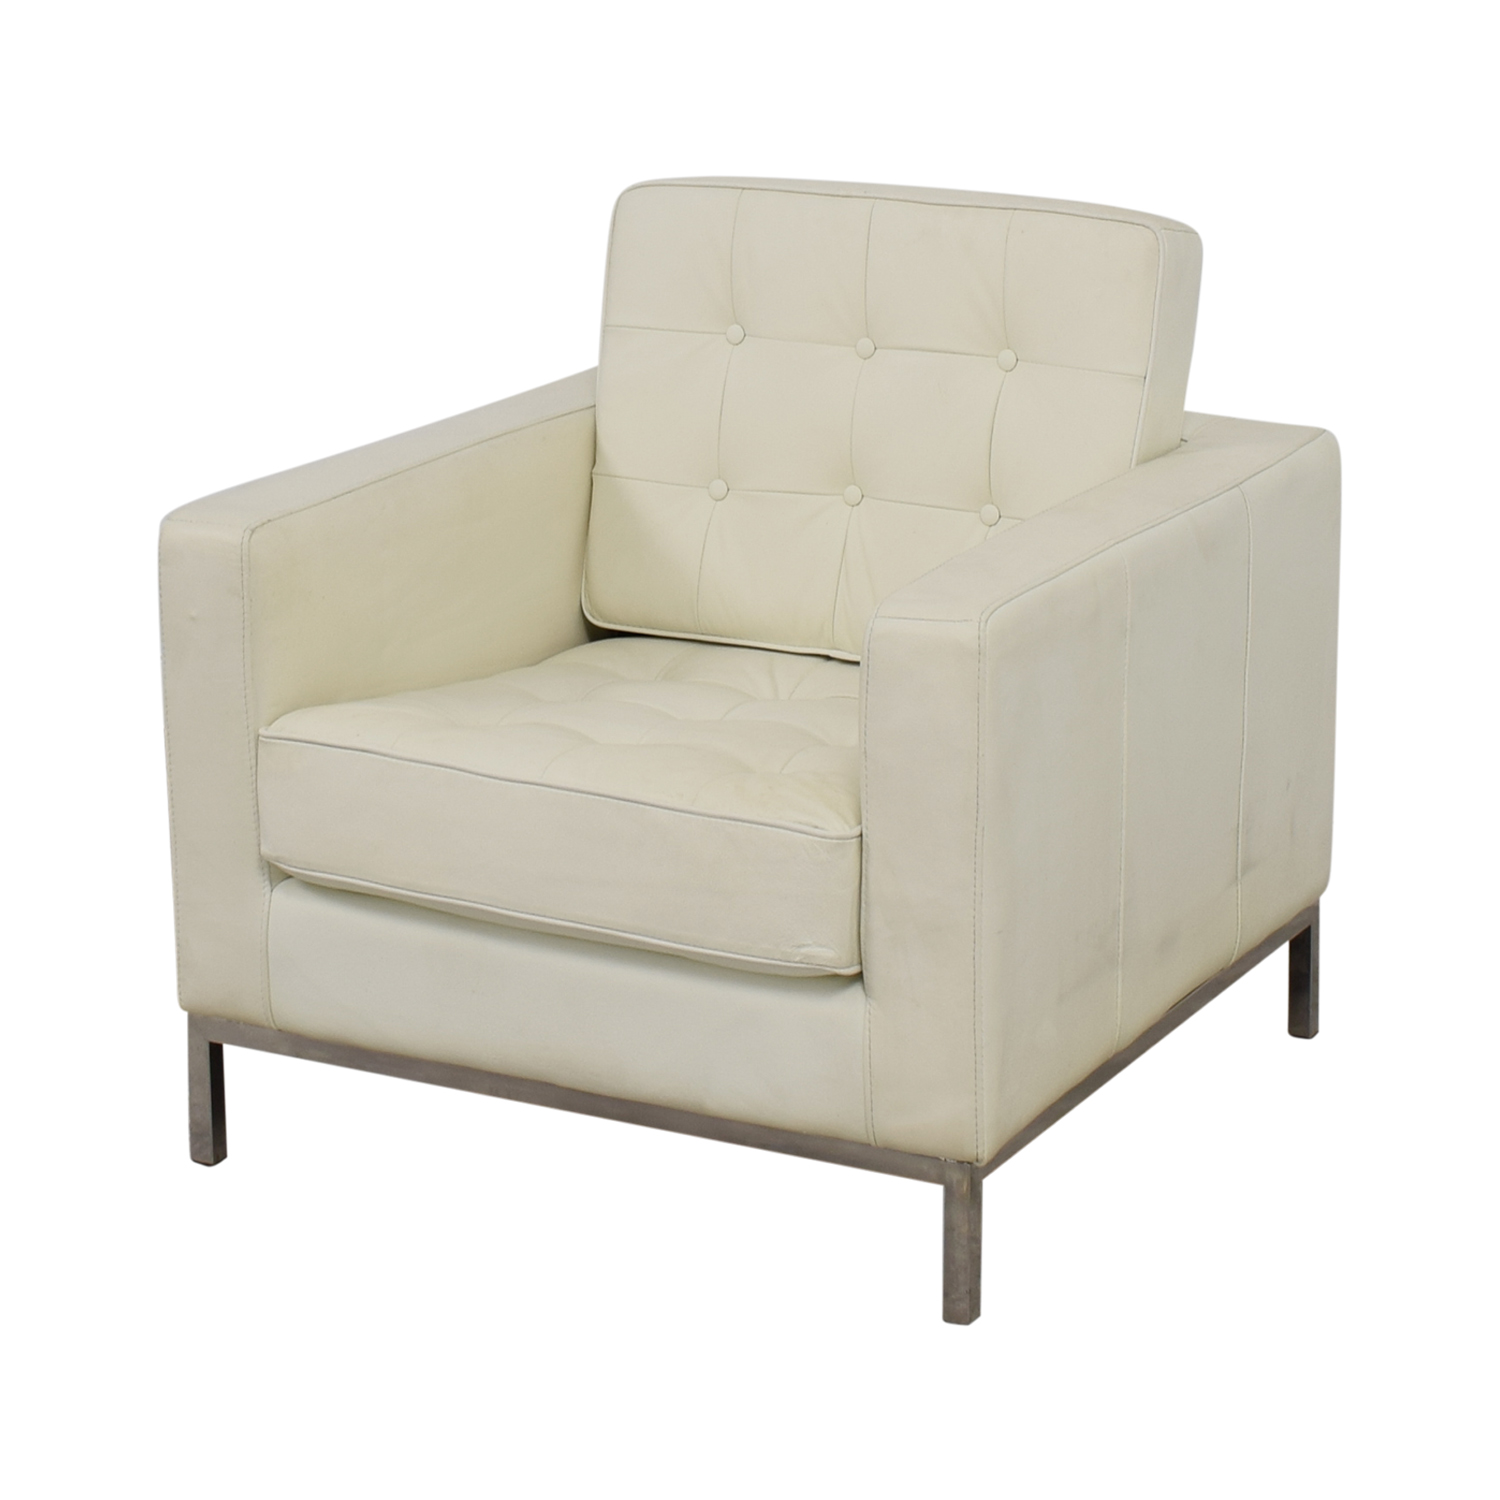 White Tufted Accent Chair 90 Off White Leather Tufted Accent Armchair Chairs